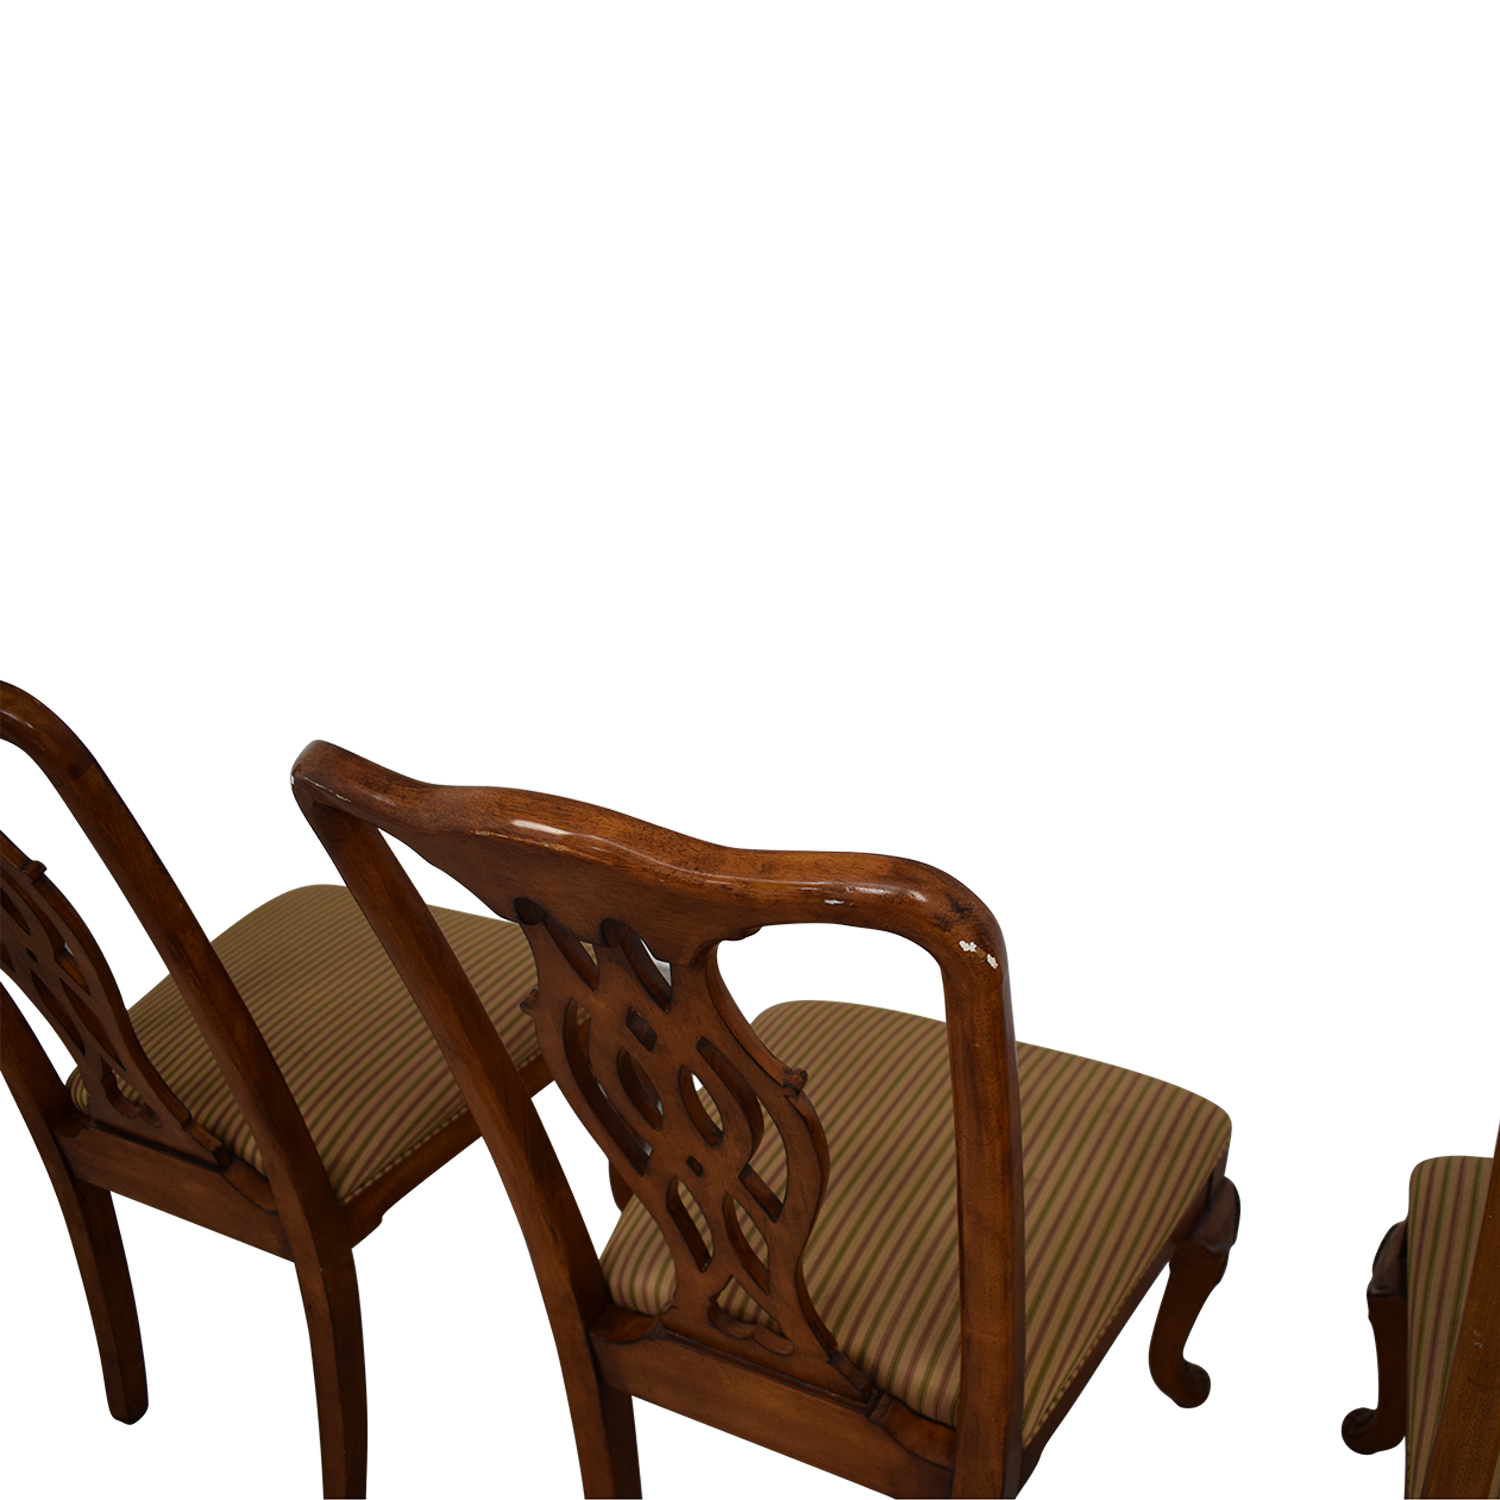 74 Off Drexel Heritage Drexel Heritage Dining Chairs Chairs